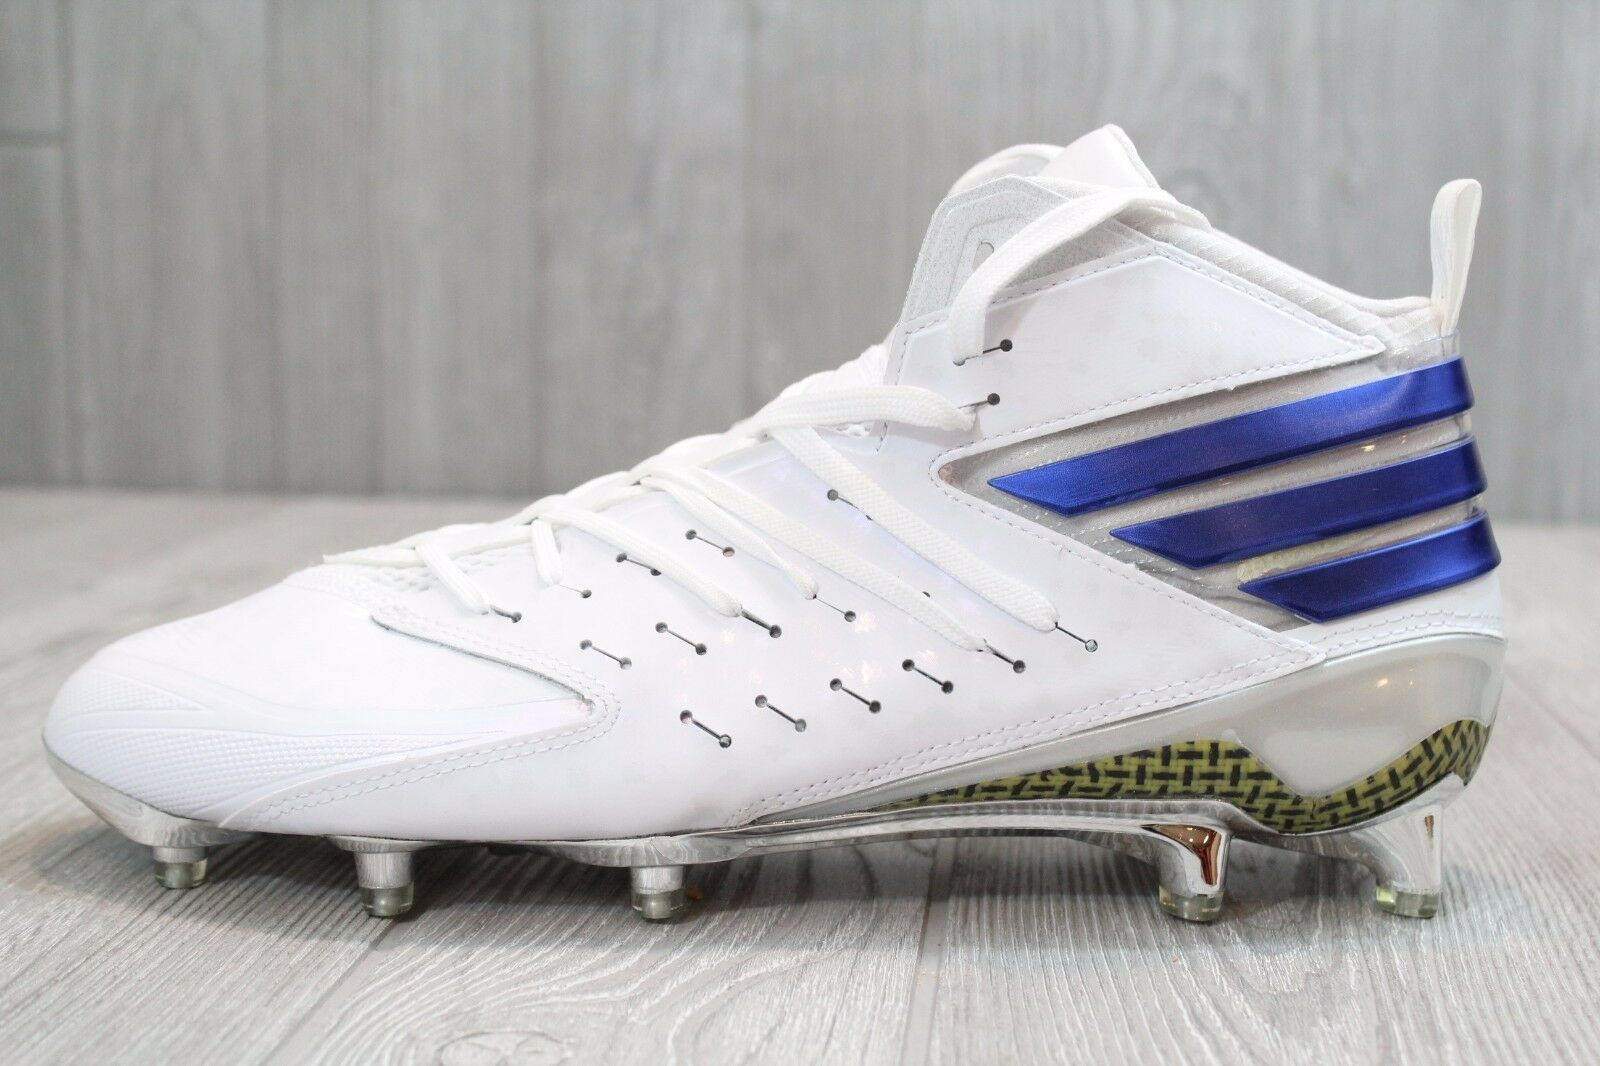 21 NEW NEW NEW ADIDAS Freak X Kevlar Mid Men's Football Cleats White AQ7371 Size 11.5 4393d6